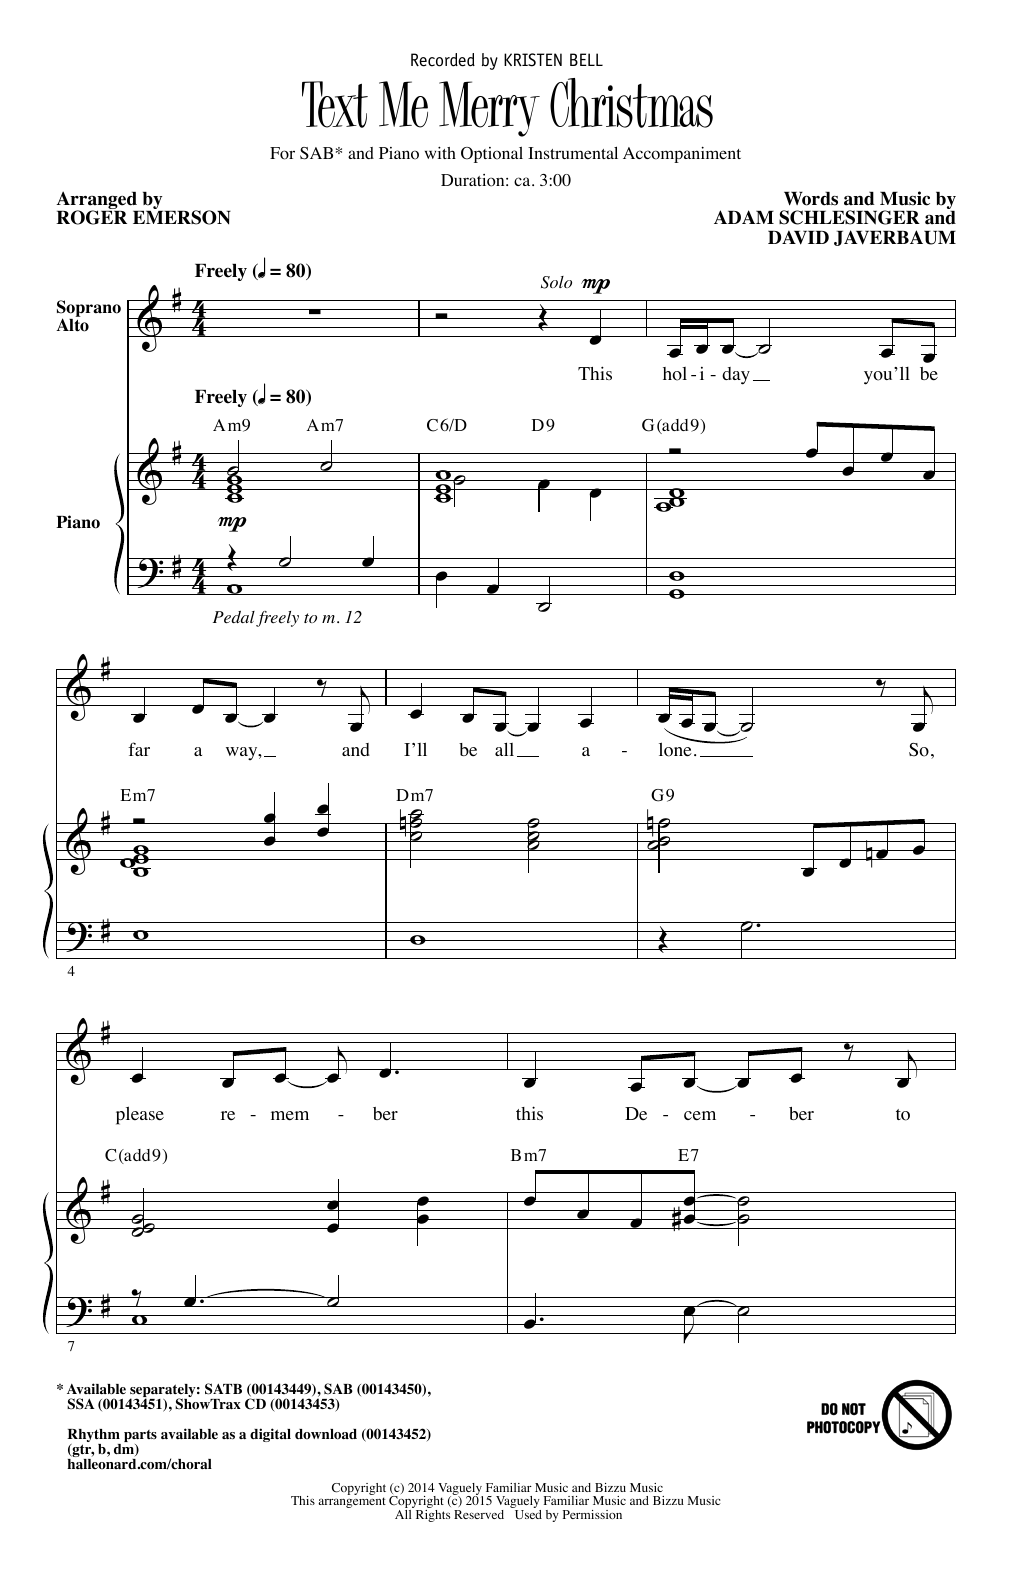 Text Me Merry Christmas (arr. Roger Emerson) (SAB Choir)